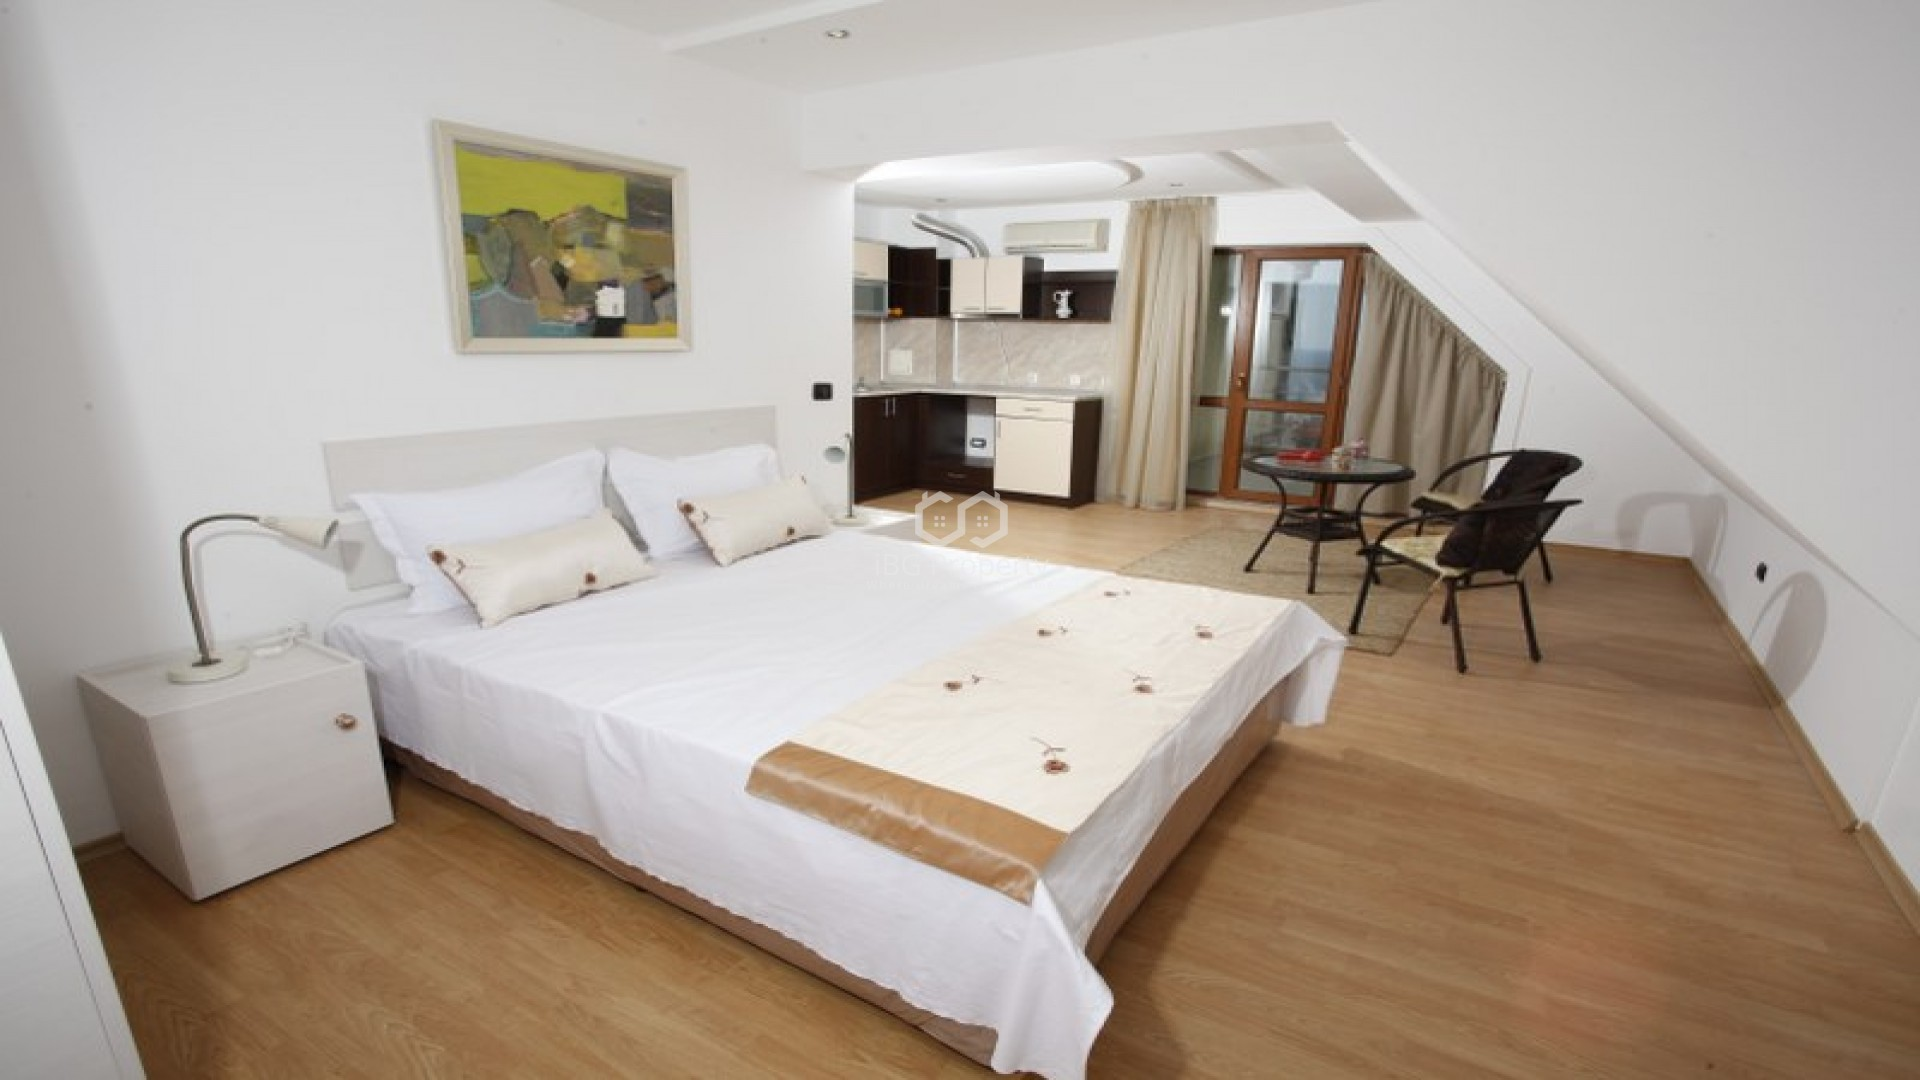 EXCLUSIVE OFFER! One bedroom apartment Byala 86 m2